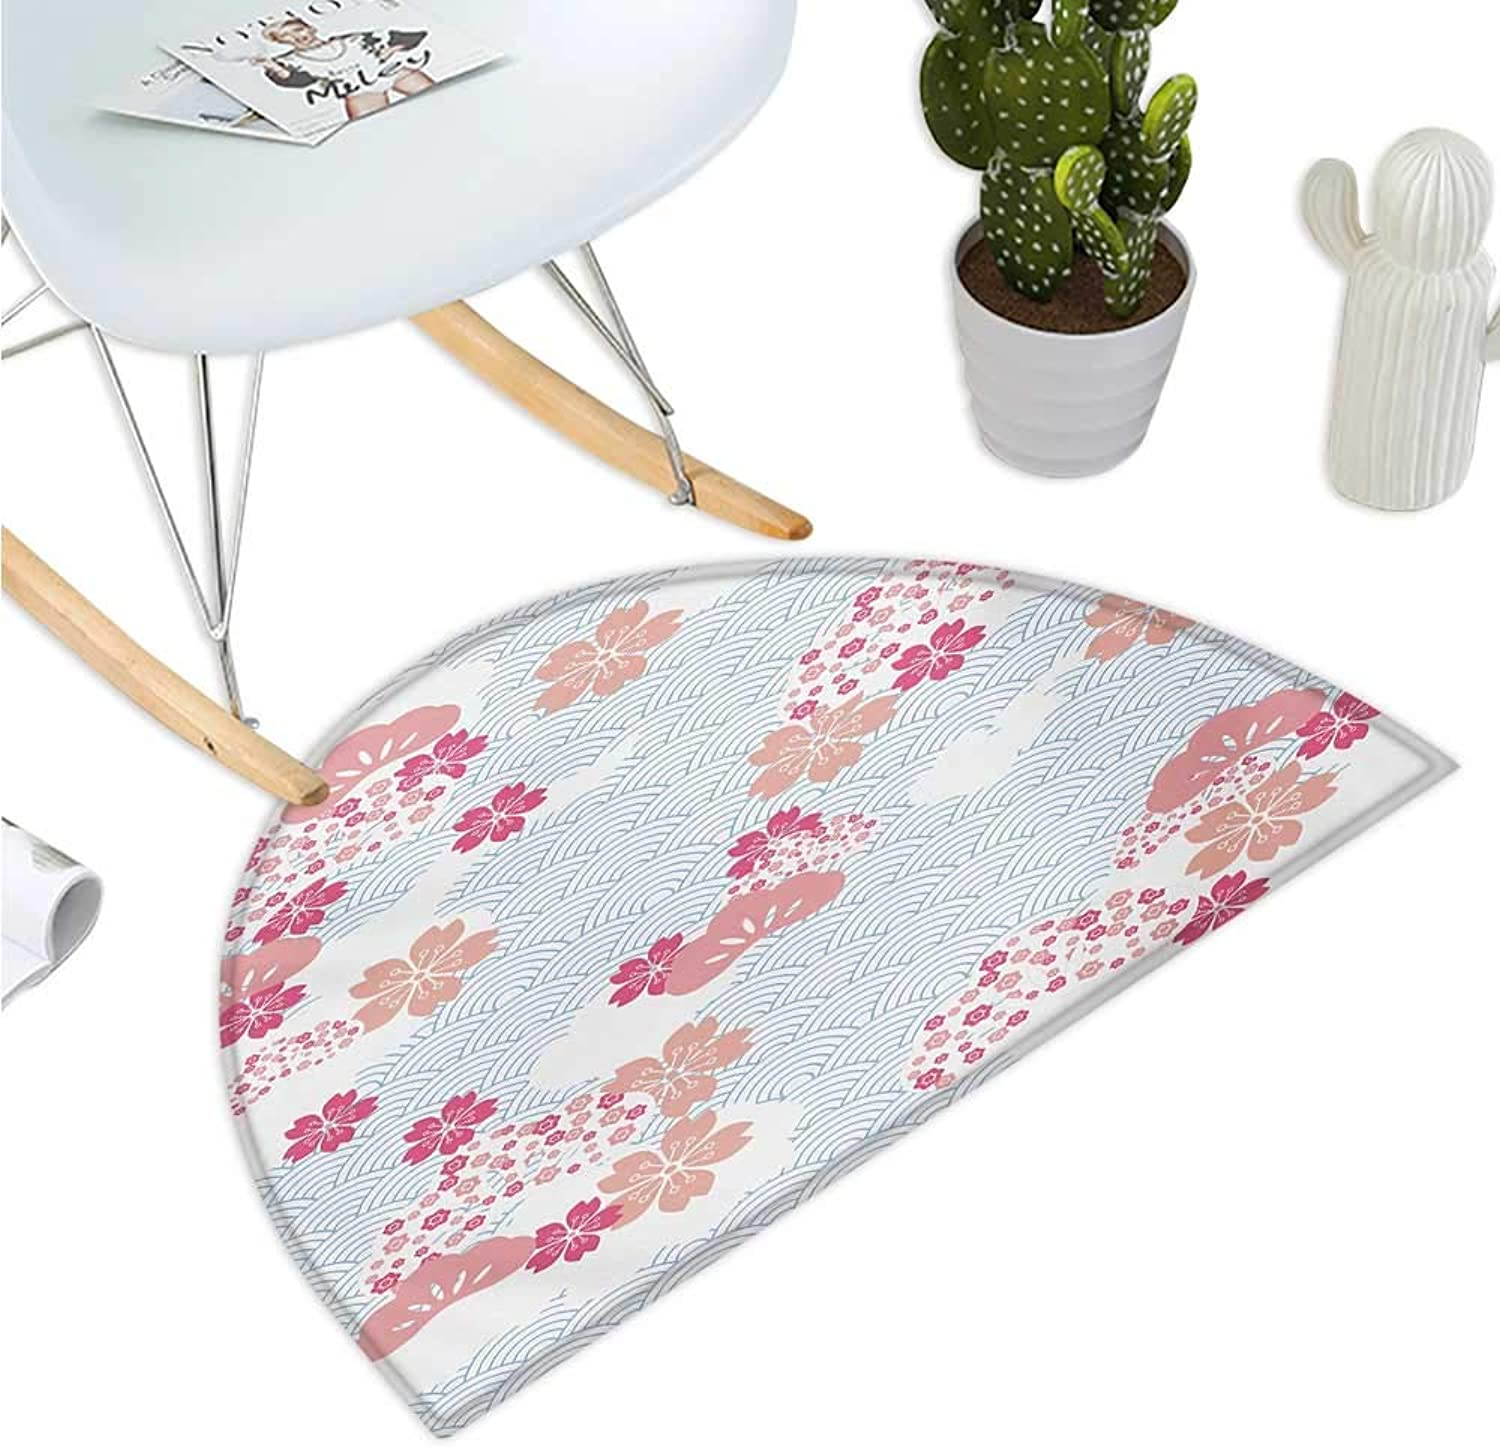 Japanese Half Round Door mats Squama Pattern with Cherry Blossom Land of The Rising Sun Pattern Entry Door Mat H 35.4  xD 53.1  Peach Dark Coral Pale bluee